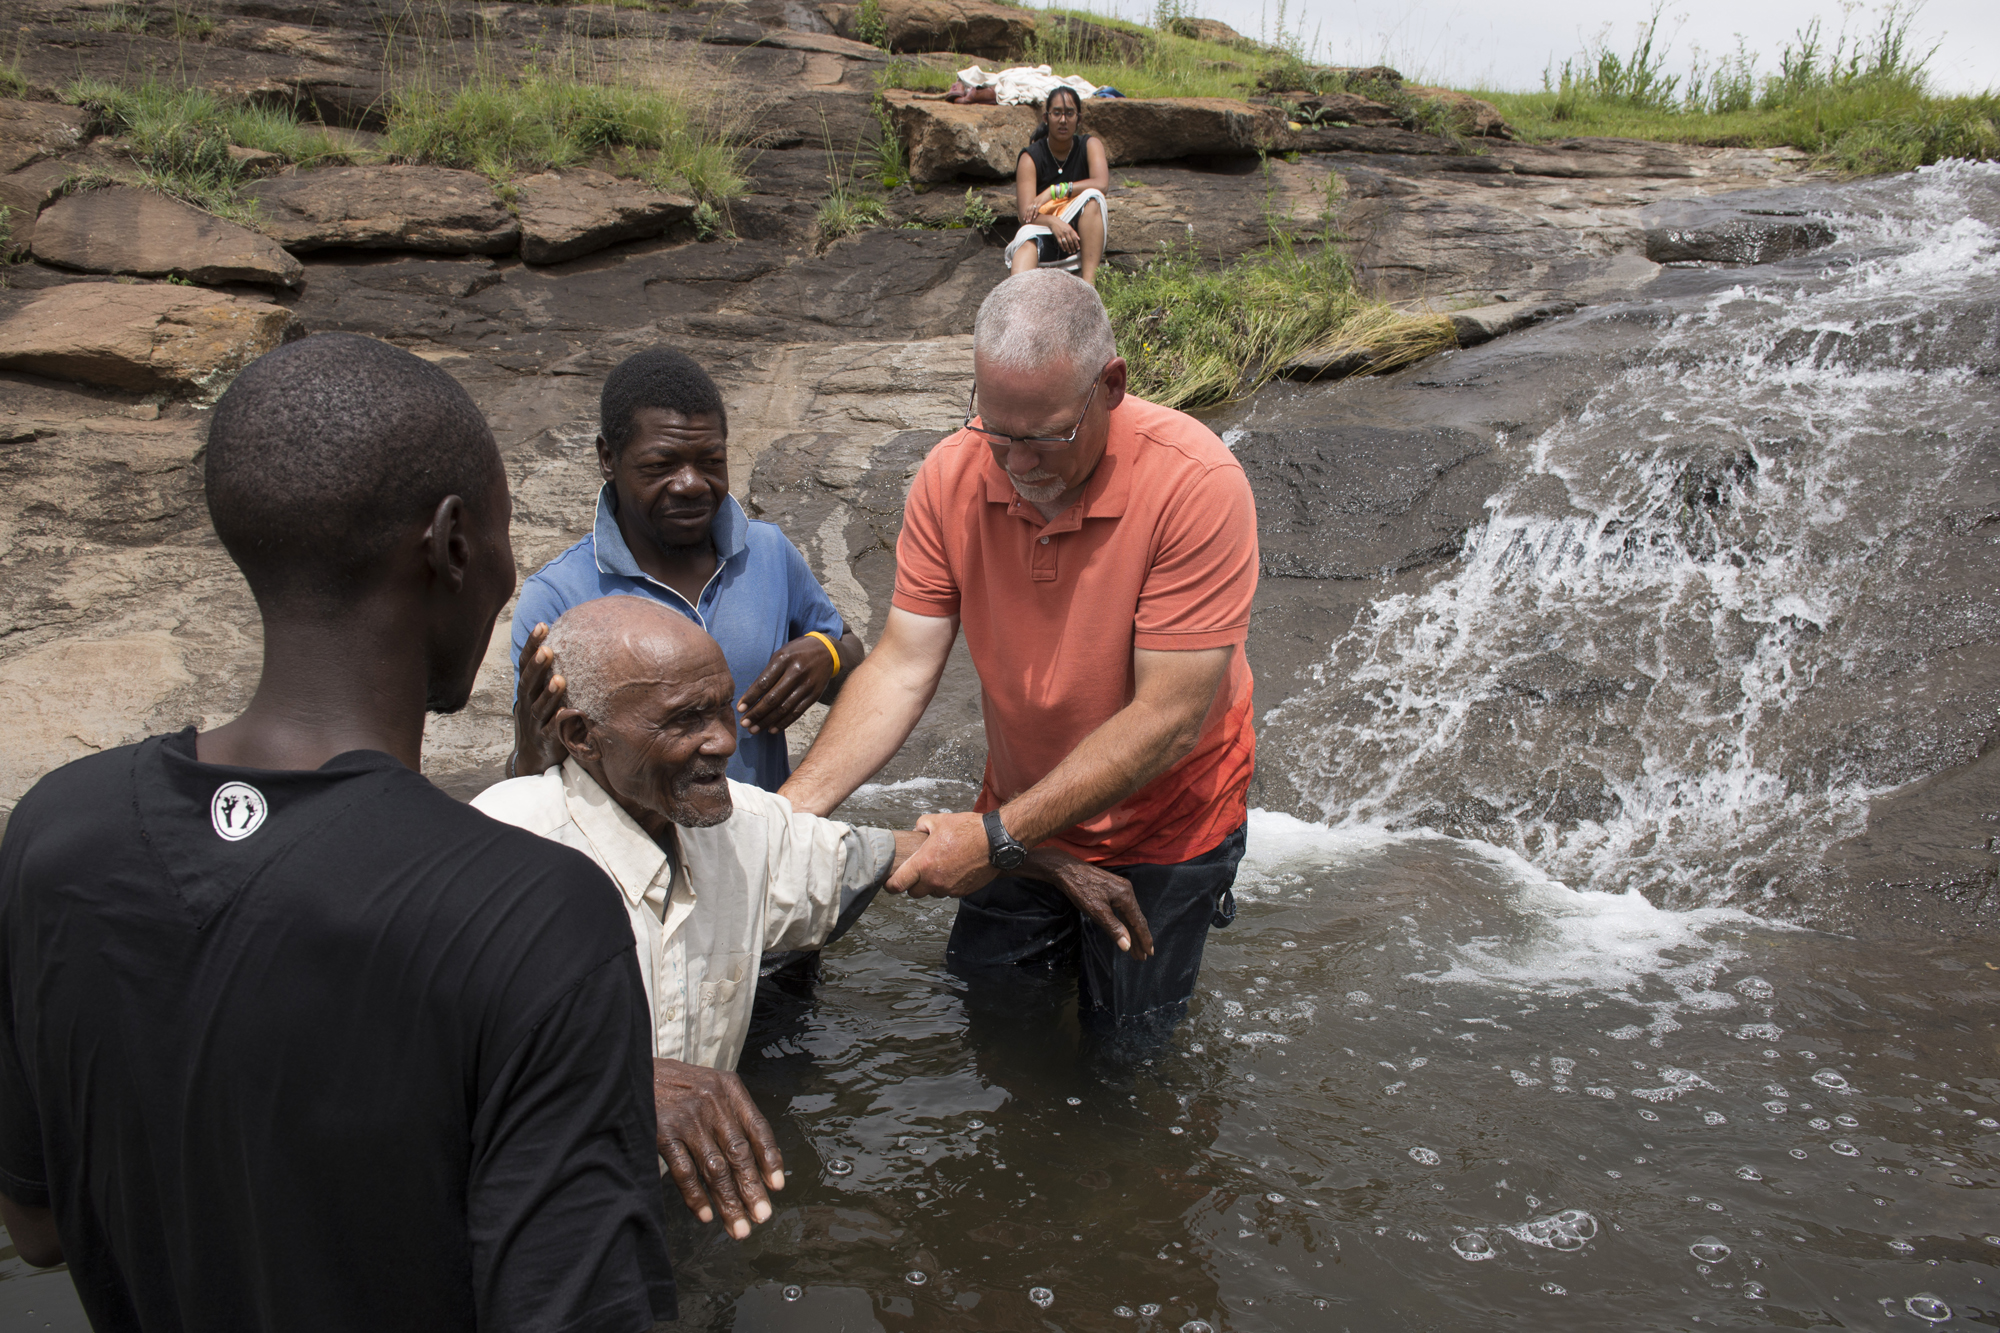 After a mile hike over steep terrain, IMB missionary Jim Flora assists local pastors as they baptize an 87-year-old believer whom they call ÒKing George.Ó When the hike became too hard for George, friends carried him on their backs to the cold mountain river.